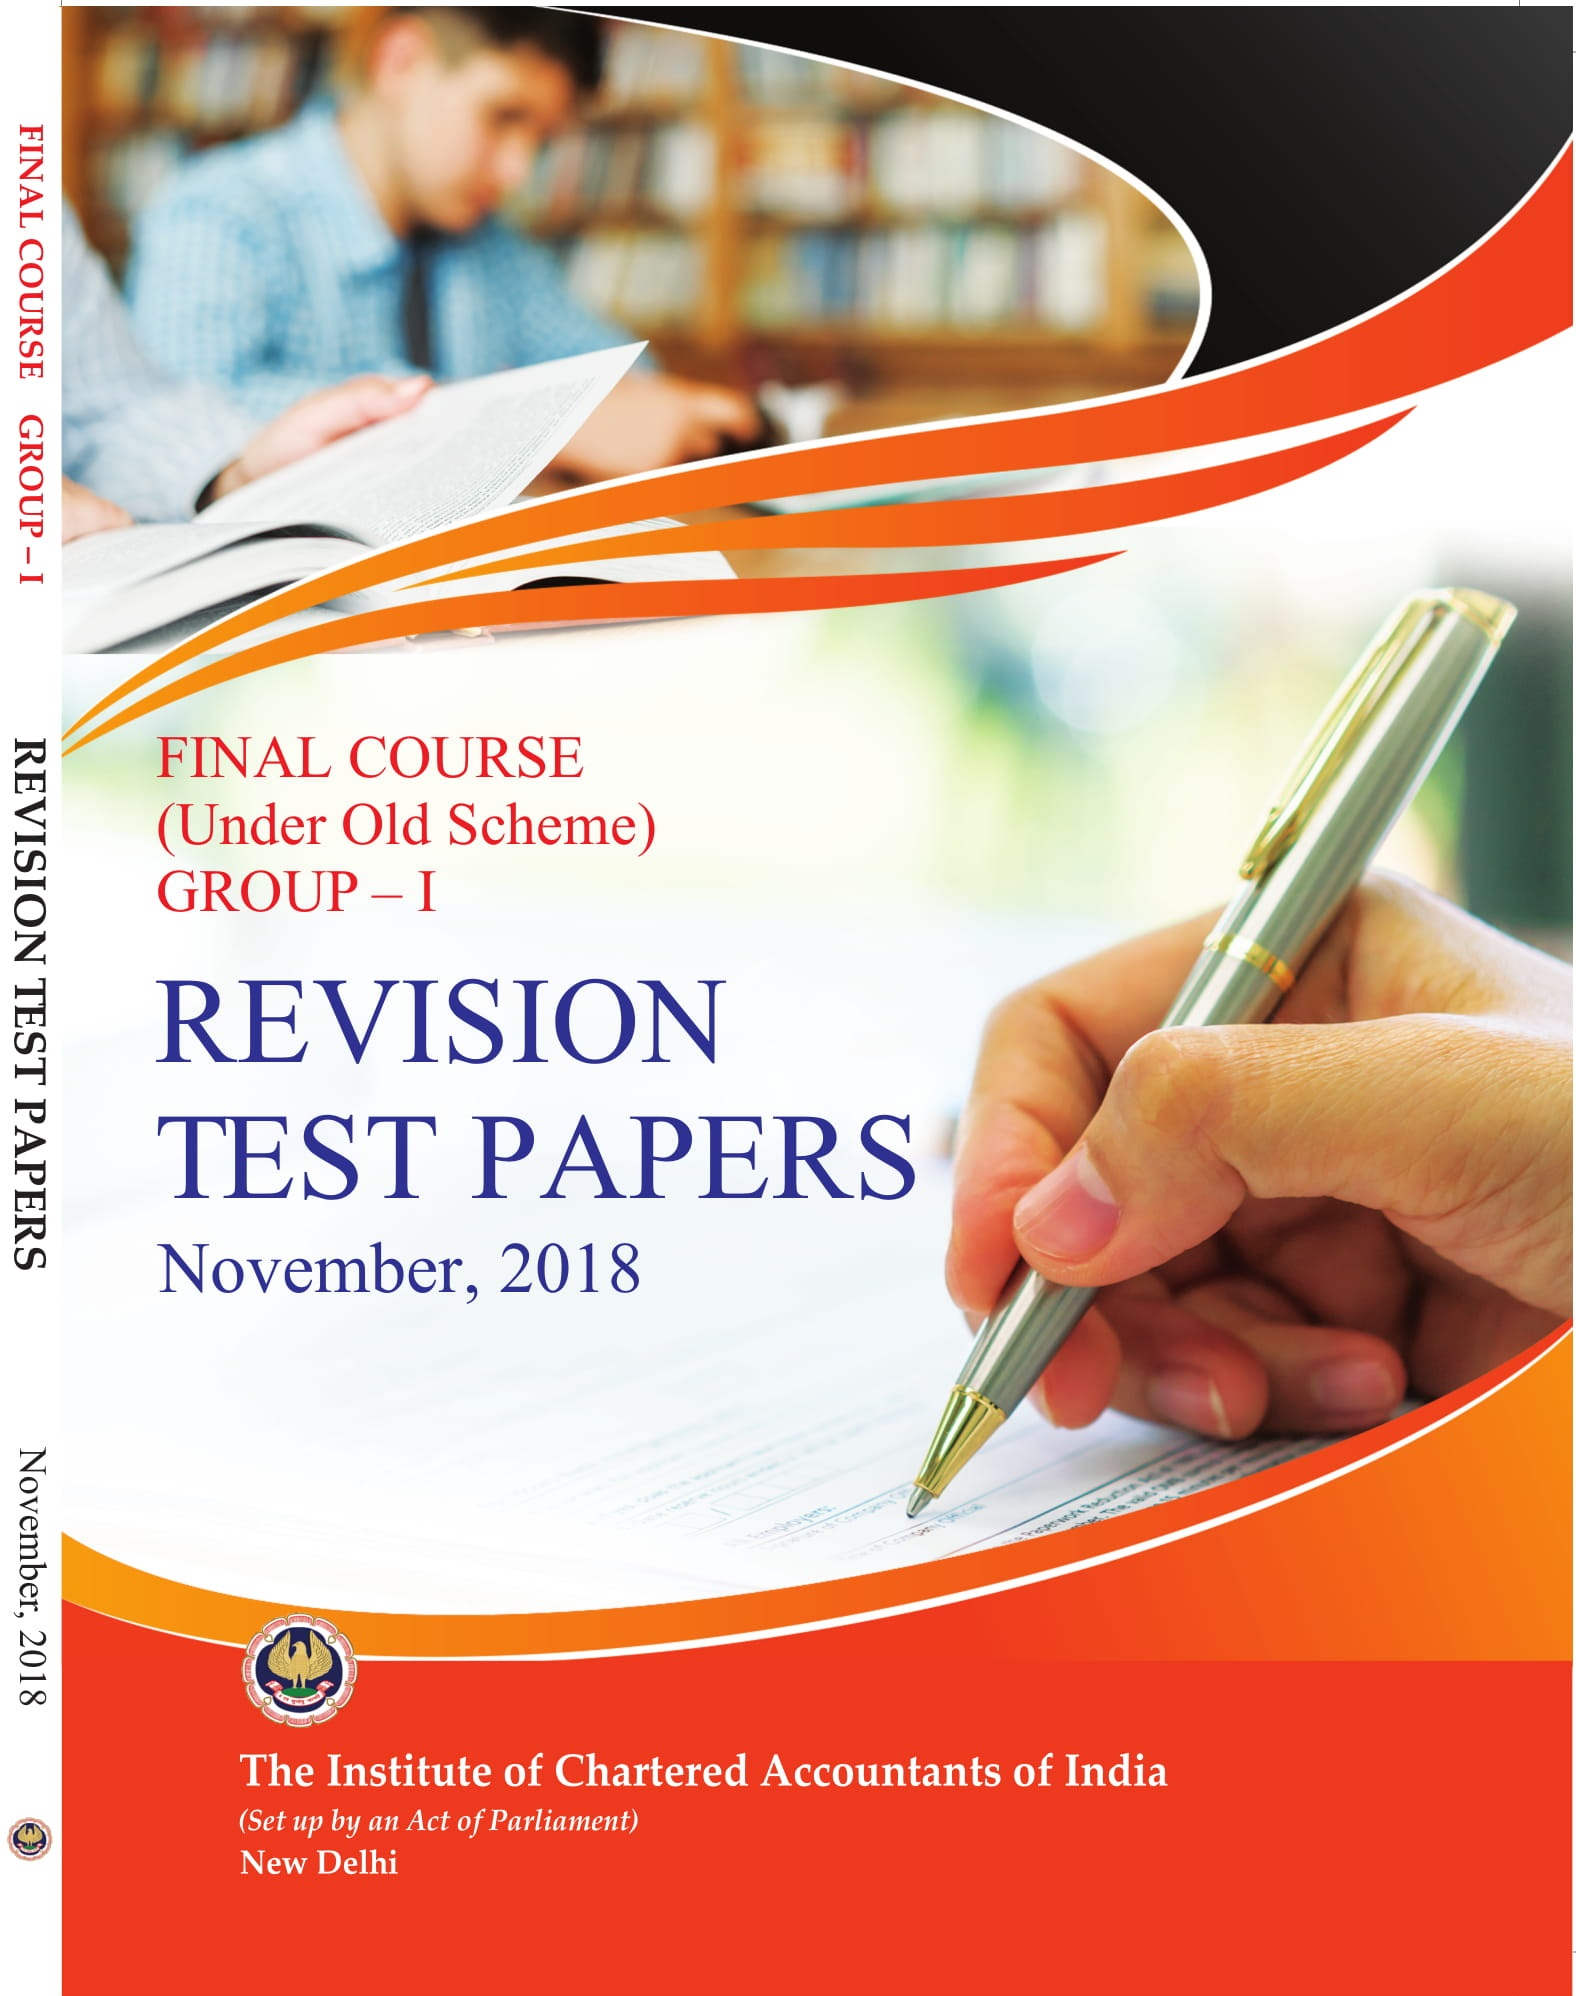 Final Course (Under Old Scheme) - Group - I - Revision Test Papers - November, 2018